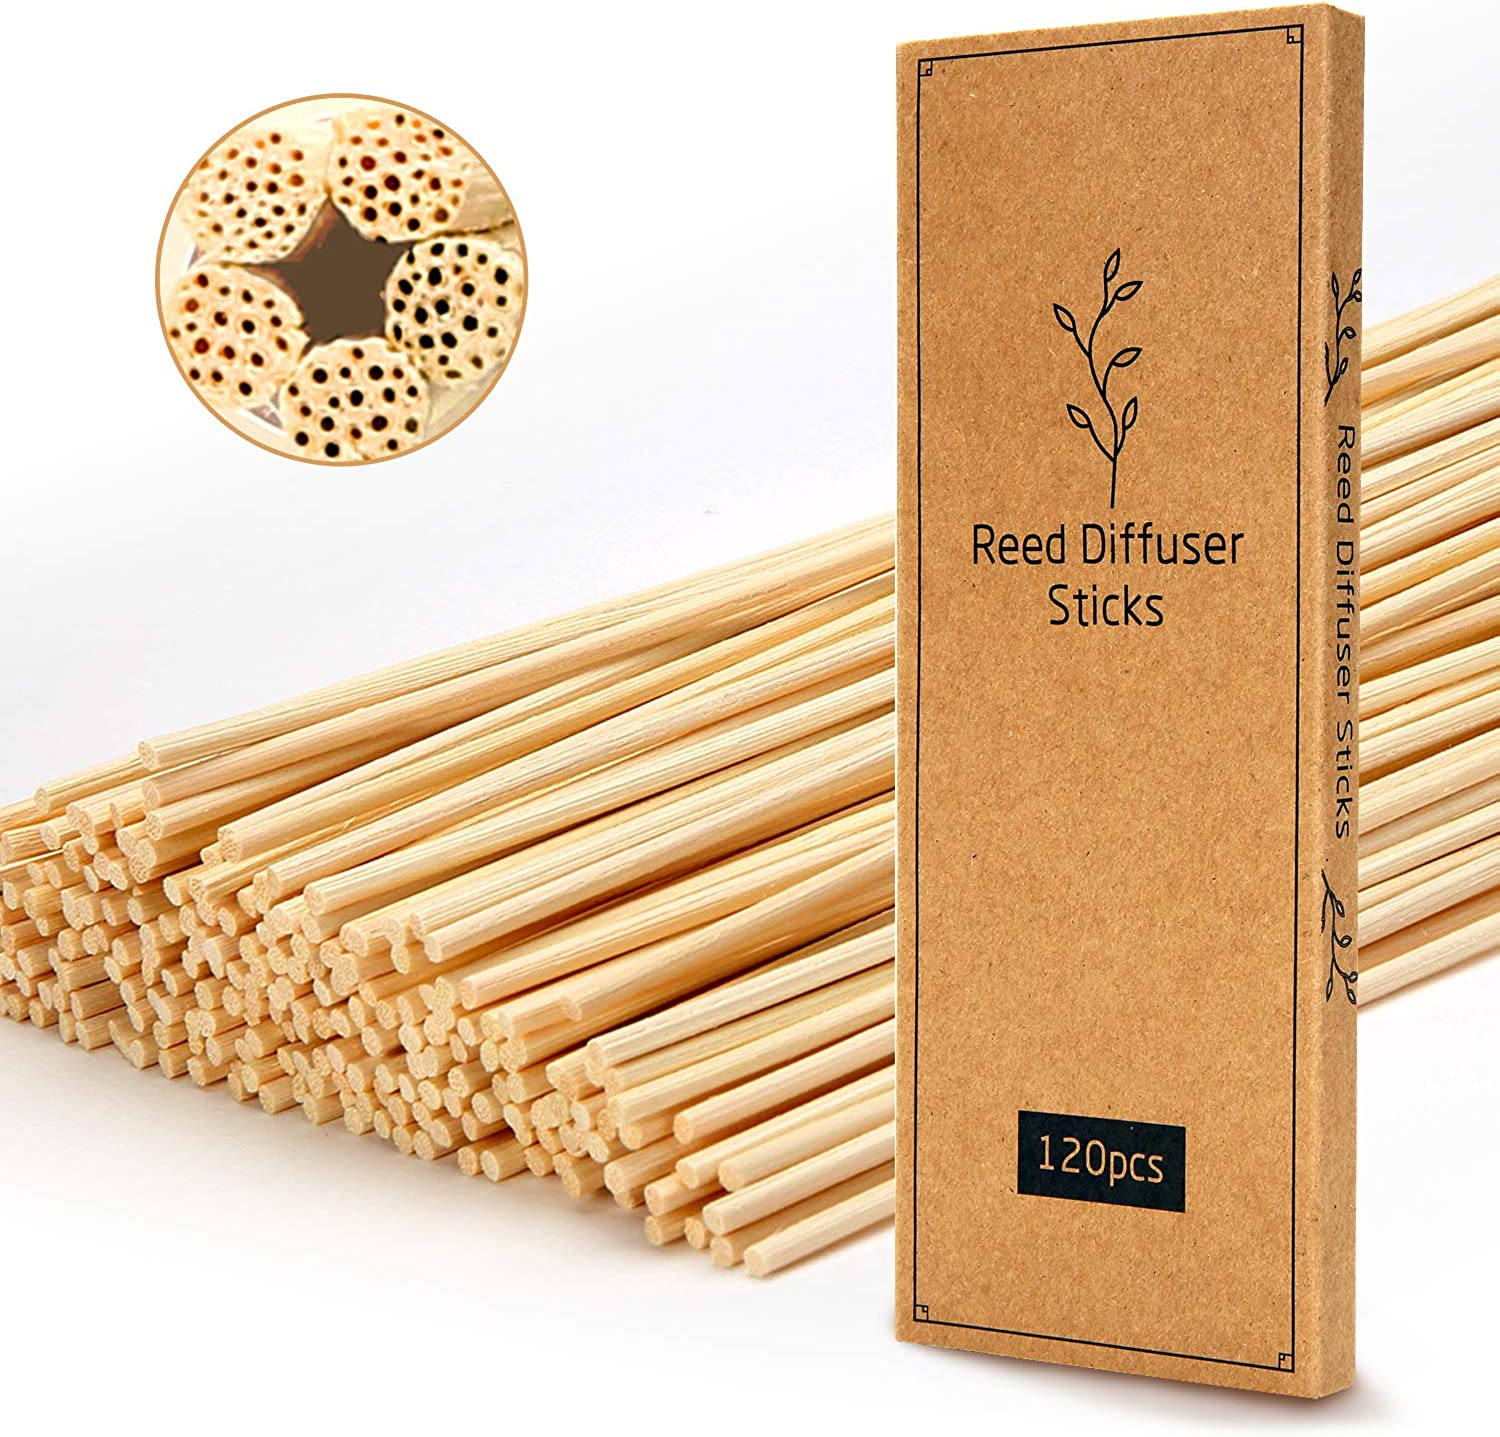 T&C 120PCS Reed Diffuser Sticks,10 Inch Natural Rattan Wood Sticks,Diffuser Refills,Essential Oil Aroma Diffuser Replacements Sticks for Home,Office